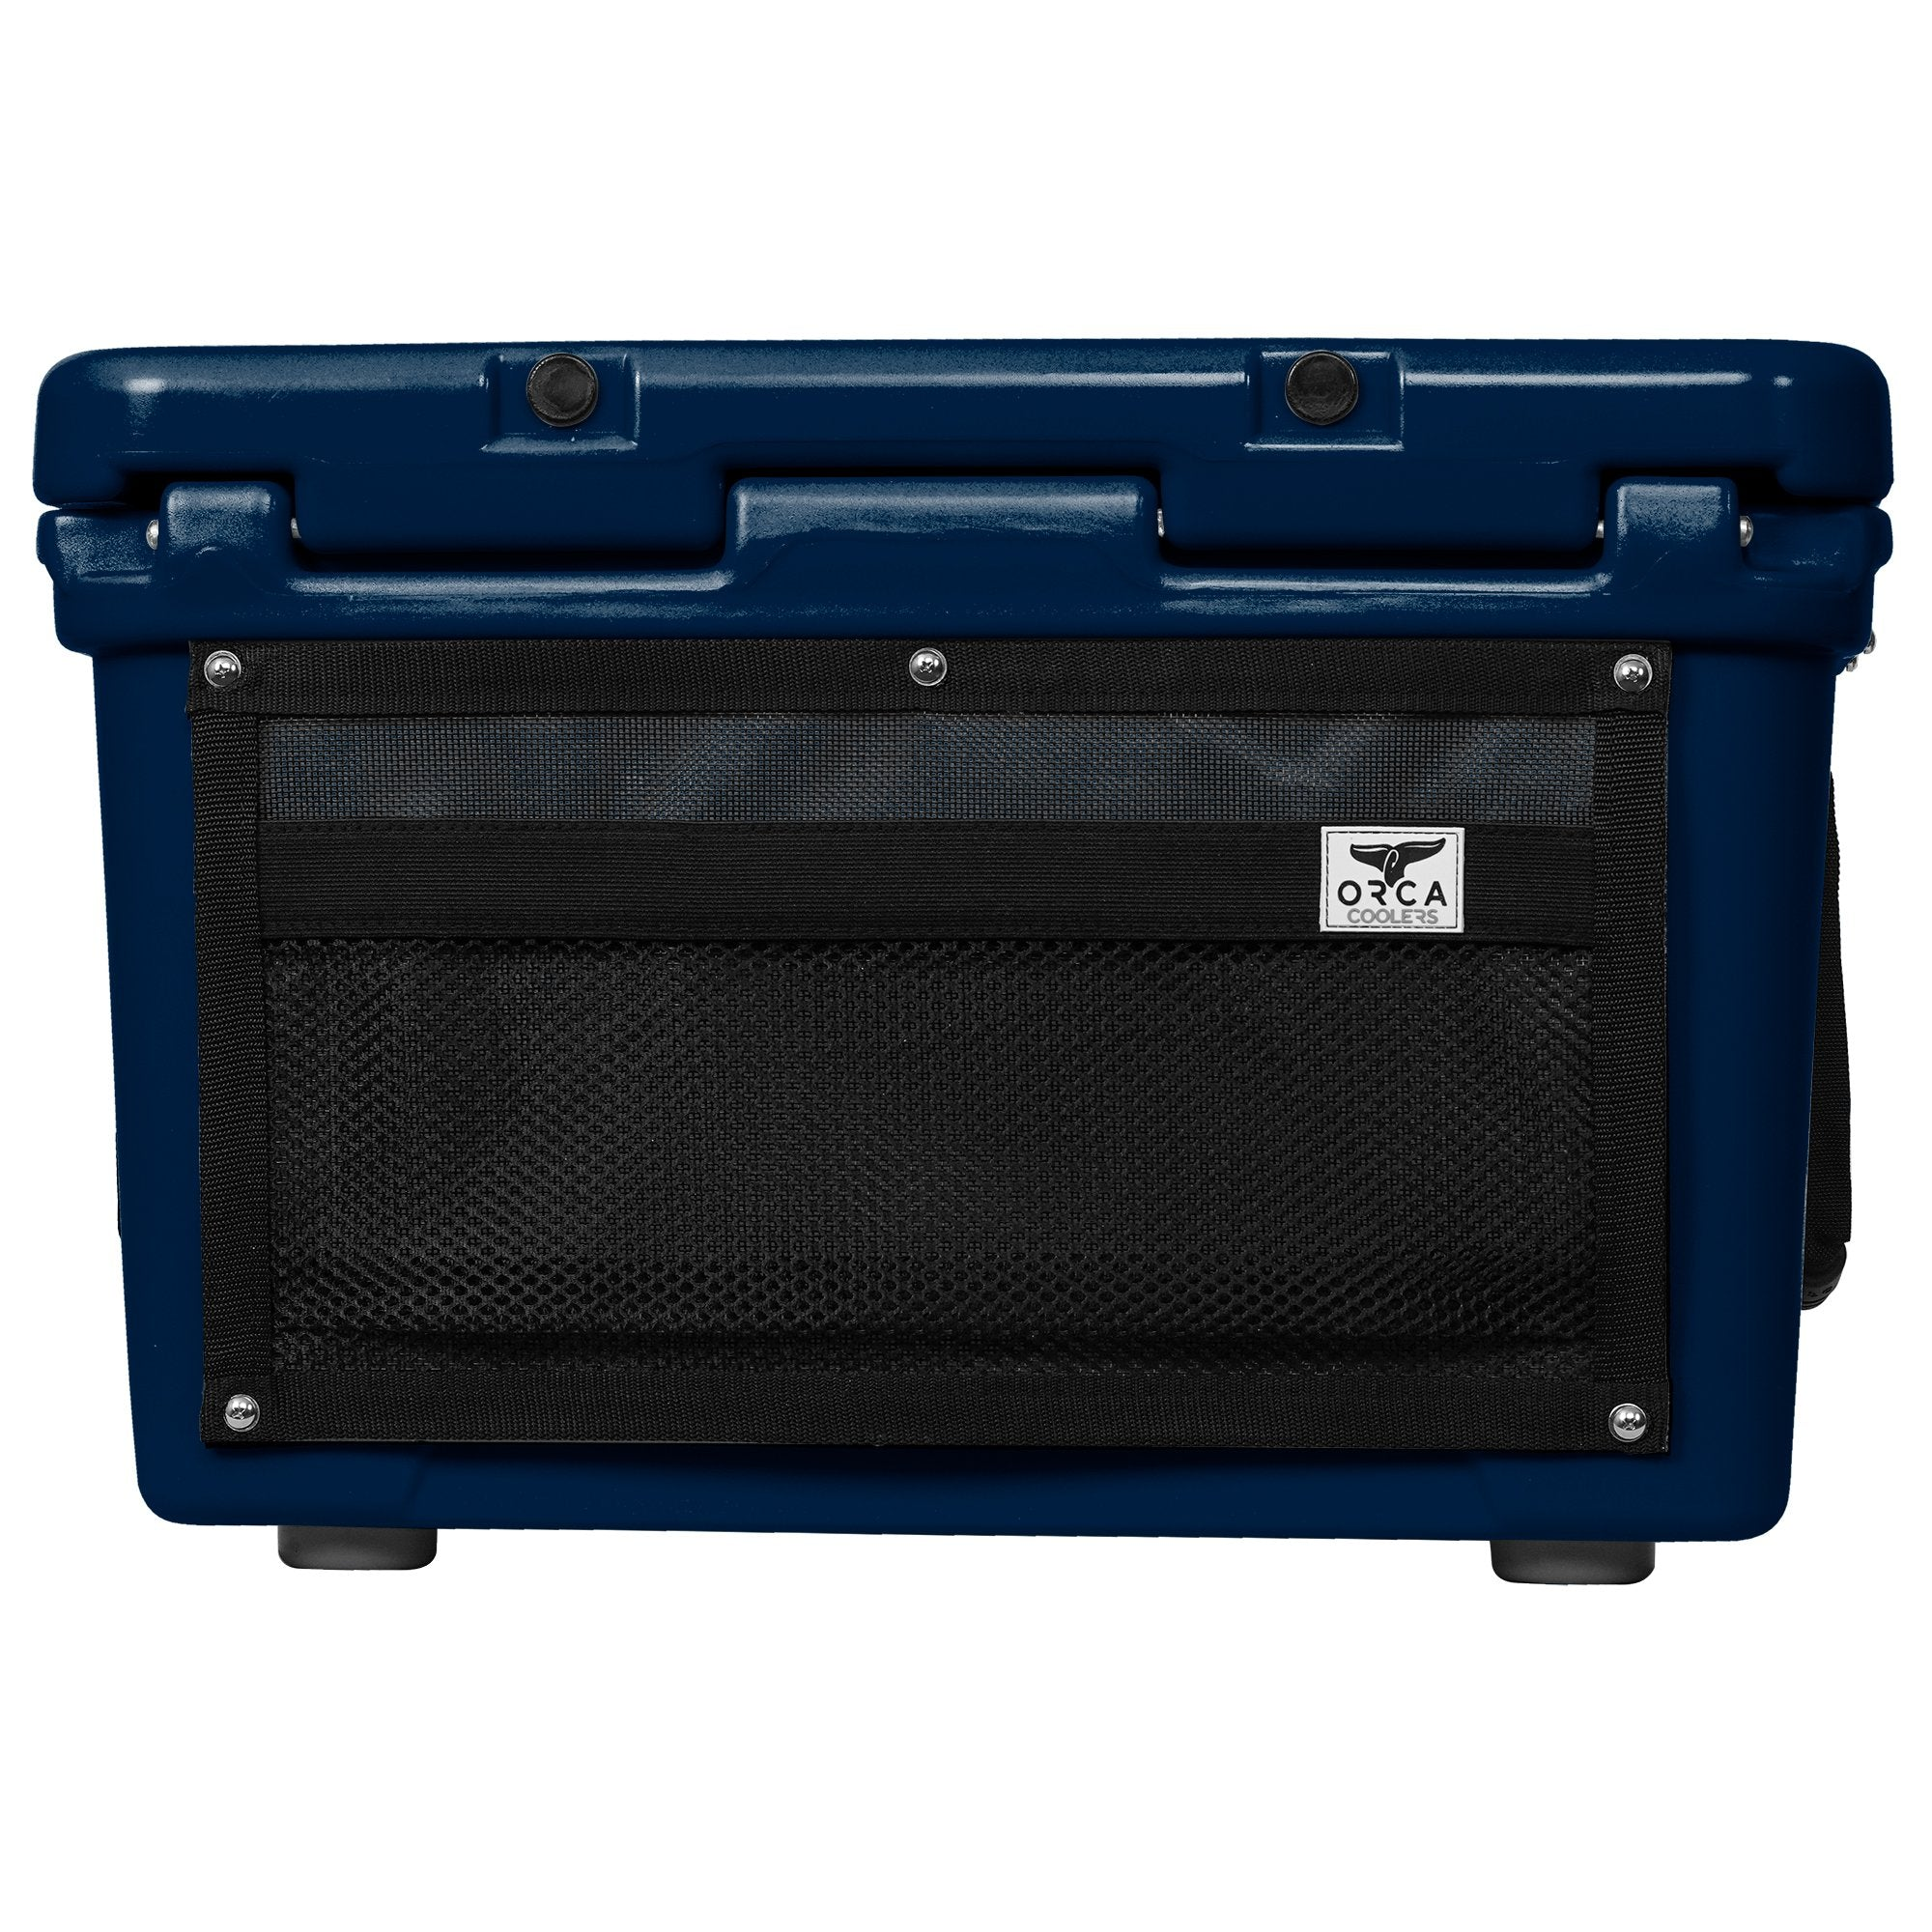 ORCA Navy 40 Cooler Blue Chair Bay